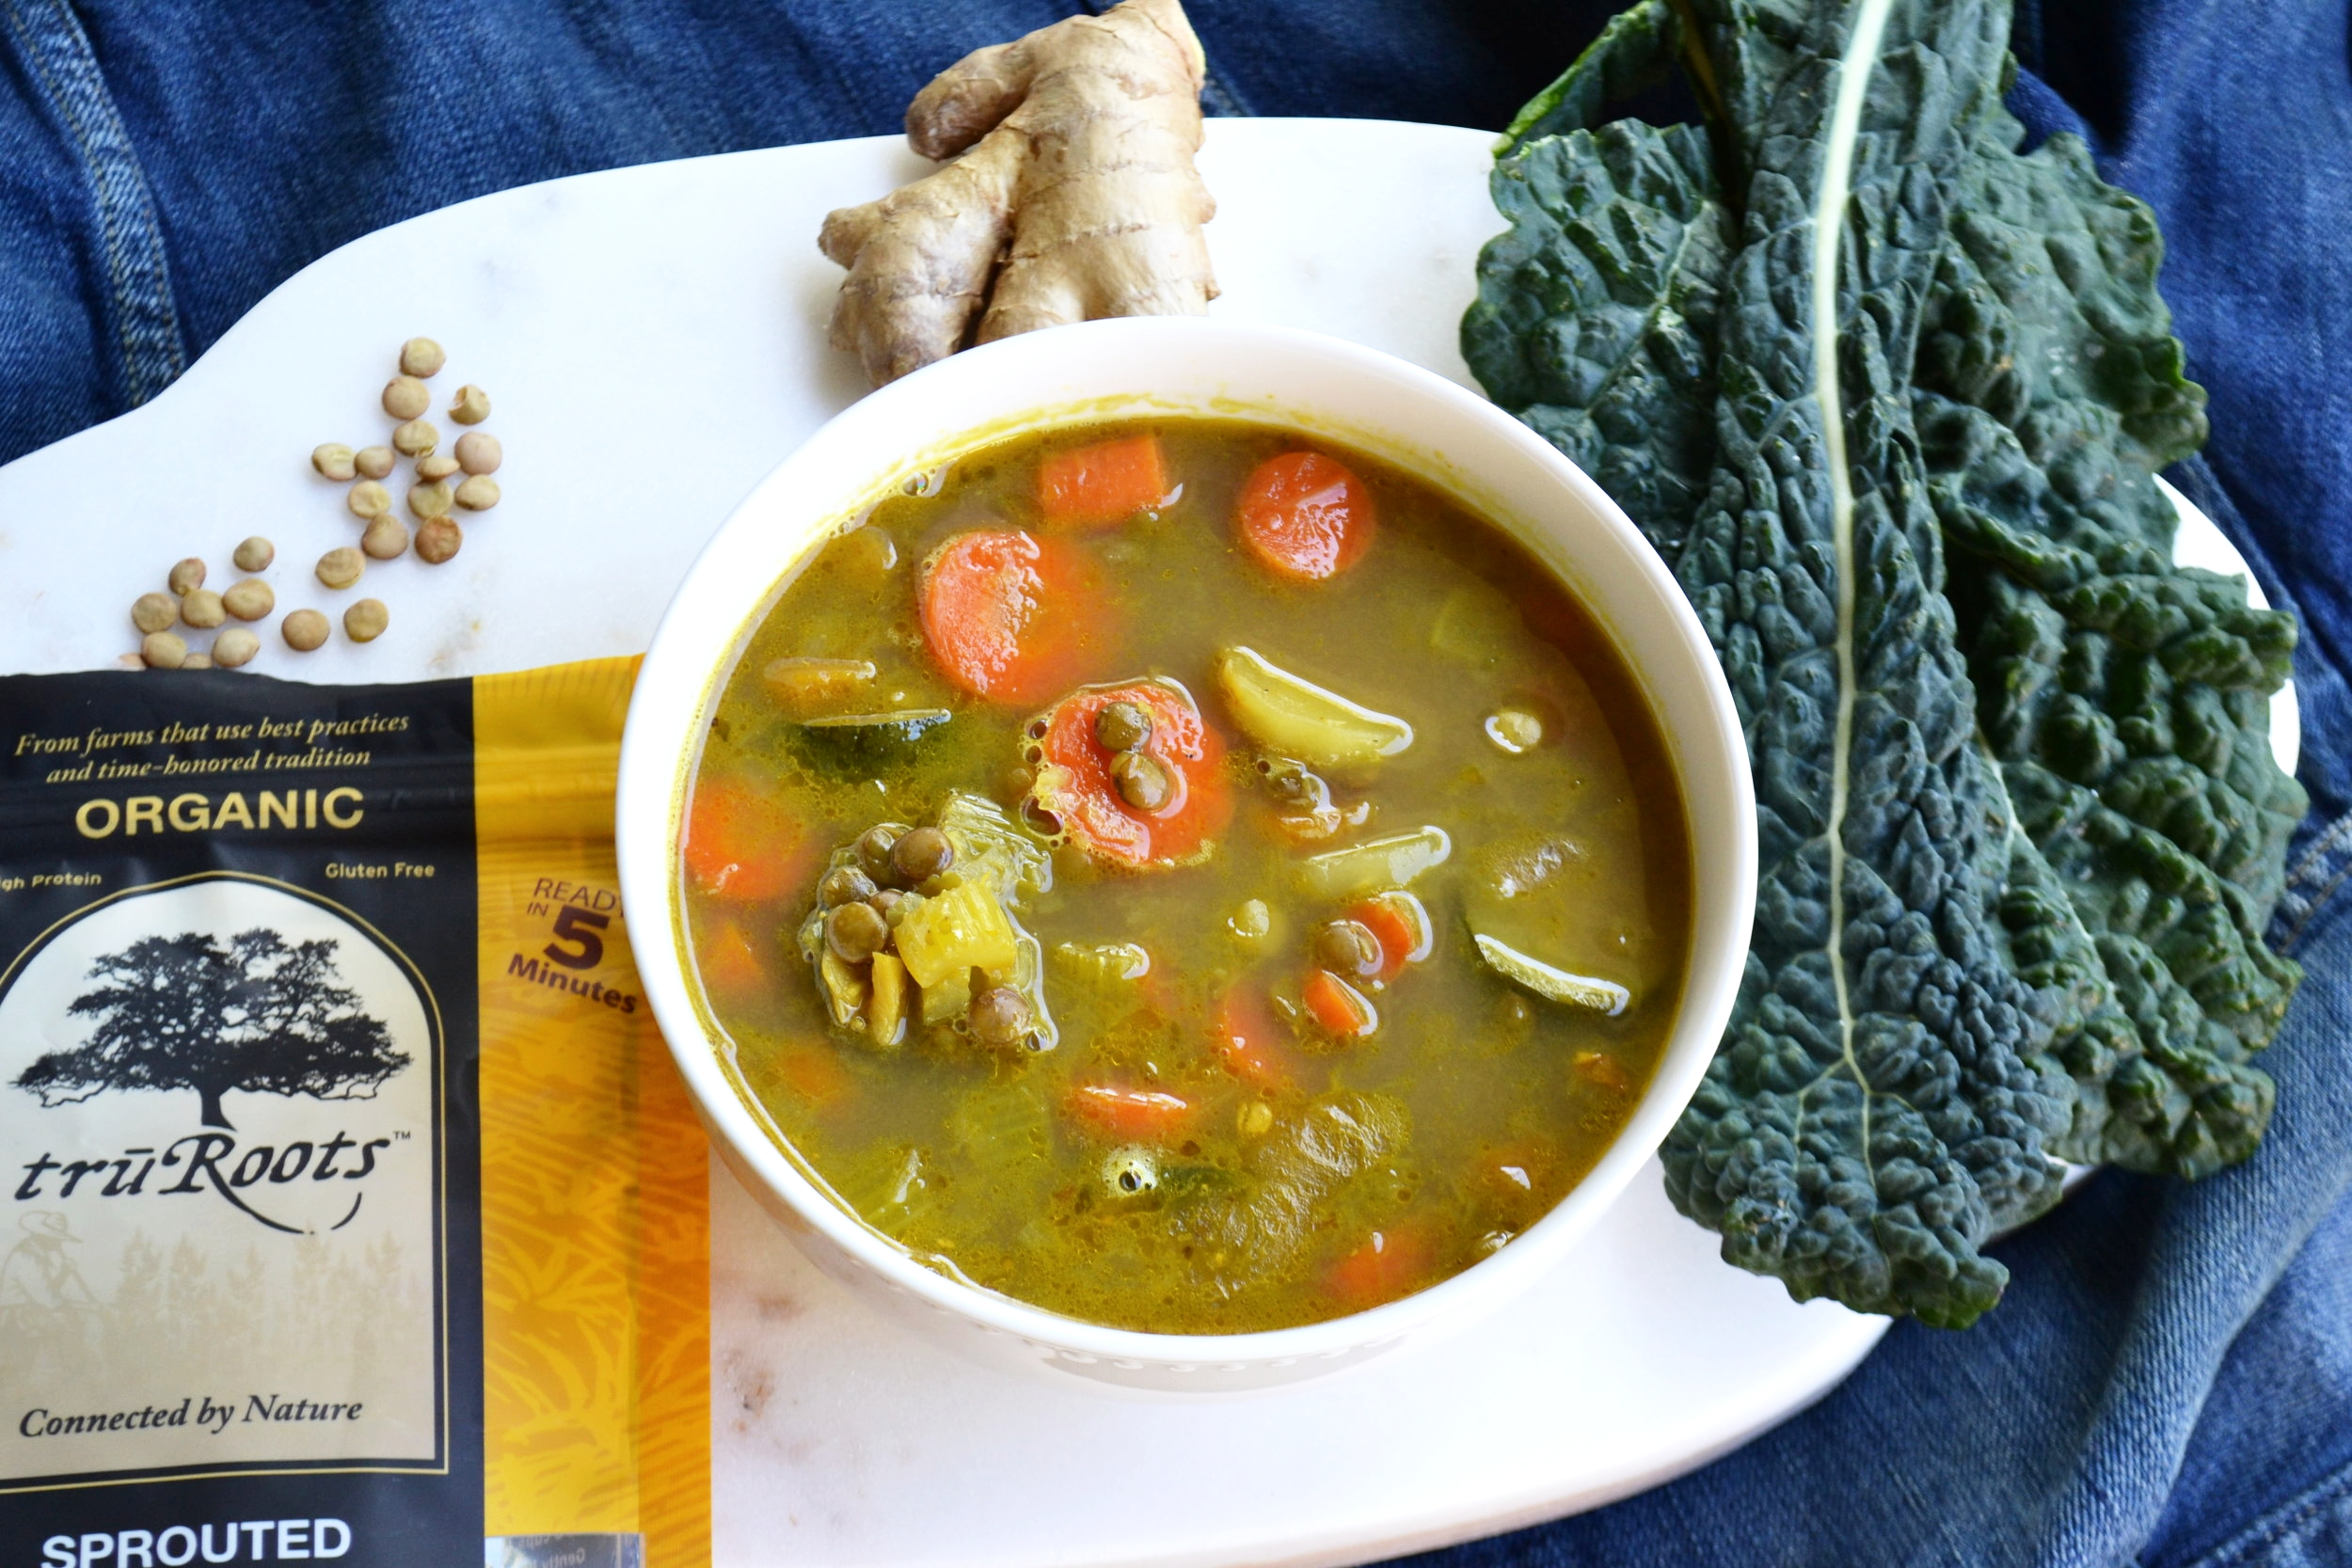 This soup is full of cleansing, nourishing, and immunity boosting ingredients.  Bone broth is packed with collagen, gelatin (YAY GUT HEALTH),glutamine, & endless healing powers.Turmeric & ginger are anti-inflammatory foods that help heal the gut & boost the immune system.  To make this dish 100% vegan, sub organic vegetable broth for organic chicken bone broth.